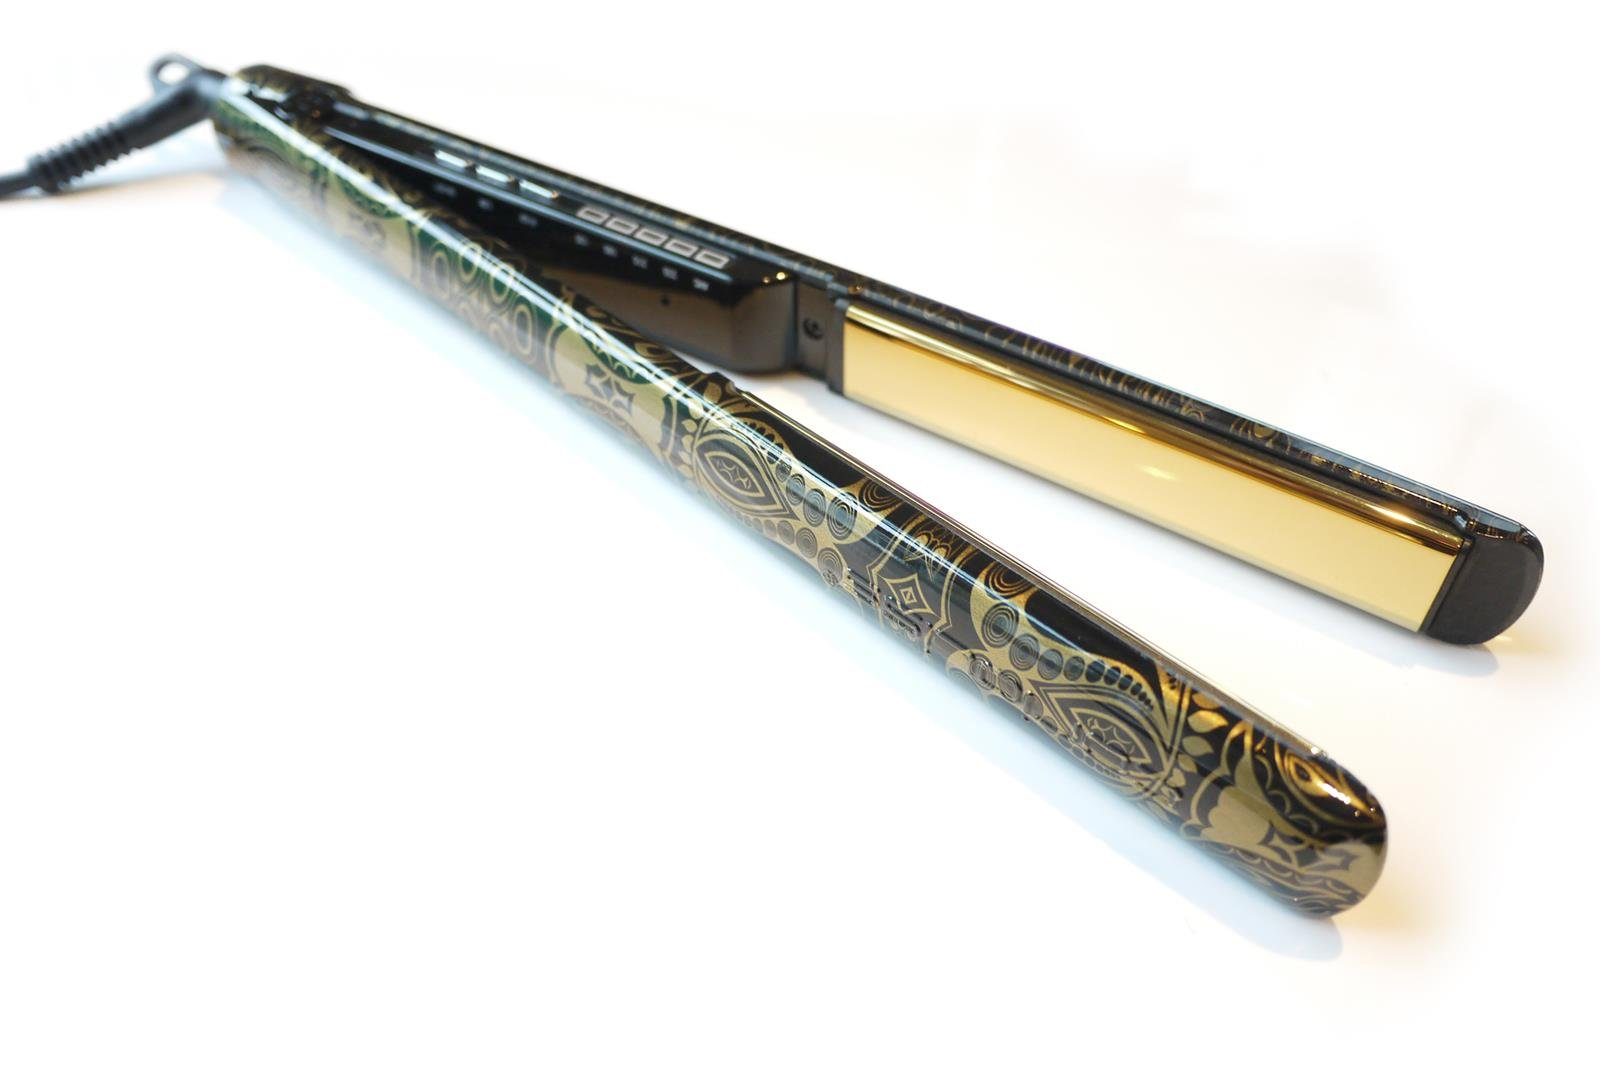 Stylers by Corioliss C3 Professional Styling Iron Gold Paisley by Corioliss (Image #2)